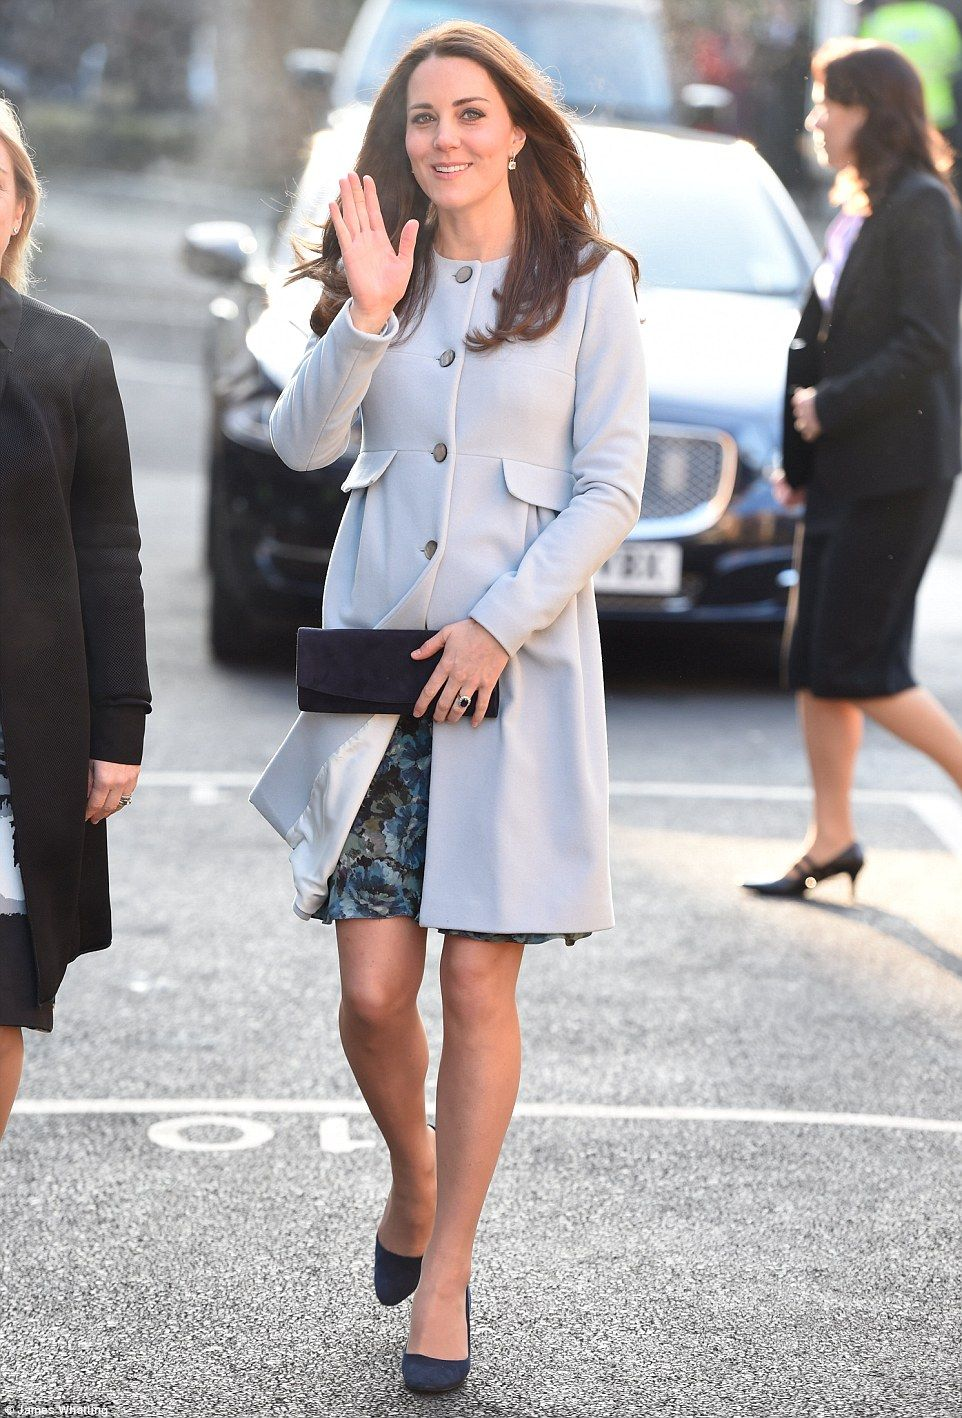 e1a0c6e1d8b0e Glamorous: The Duchess of Cambridge was every inch the yummy mummy in her  Seraphine cashmere coat as she stepped out in Kensington